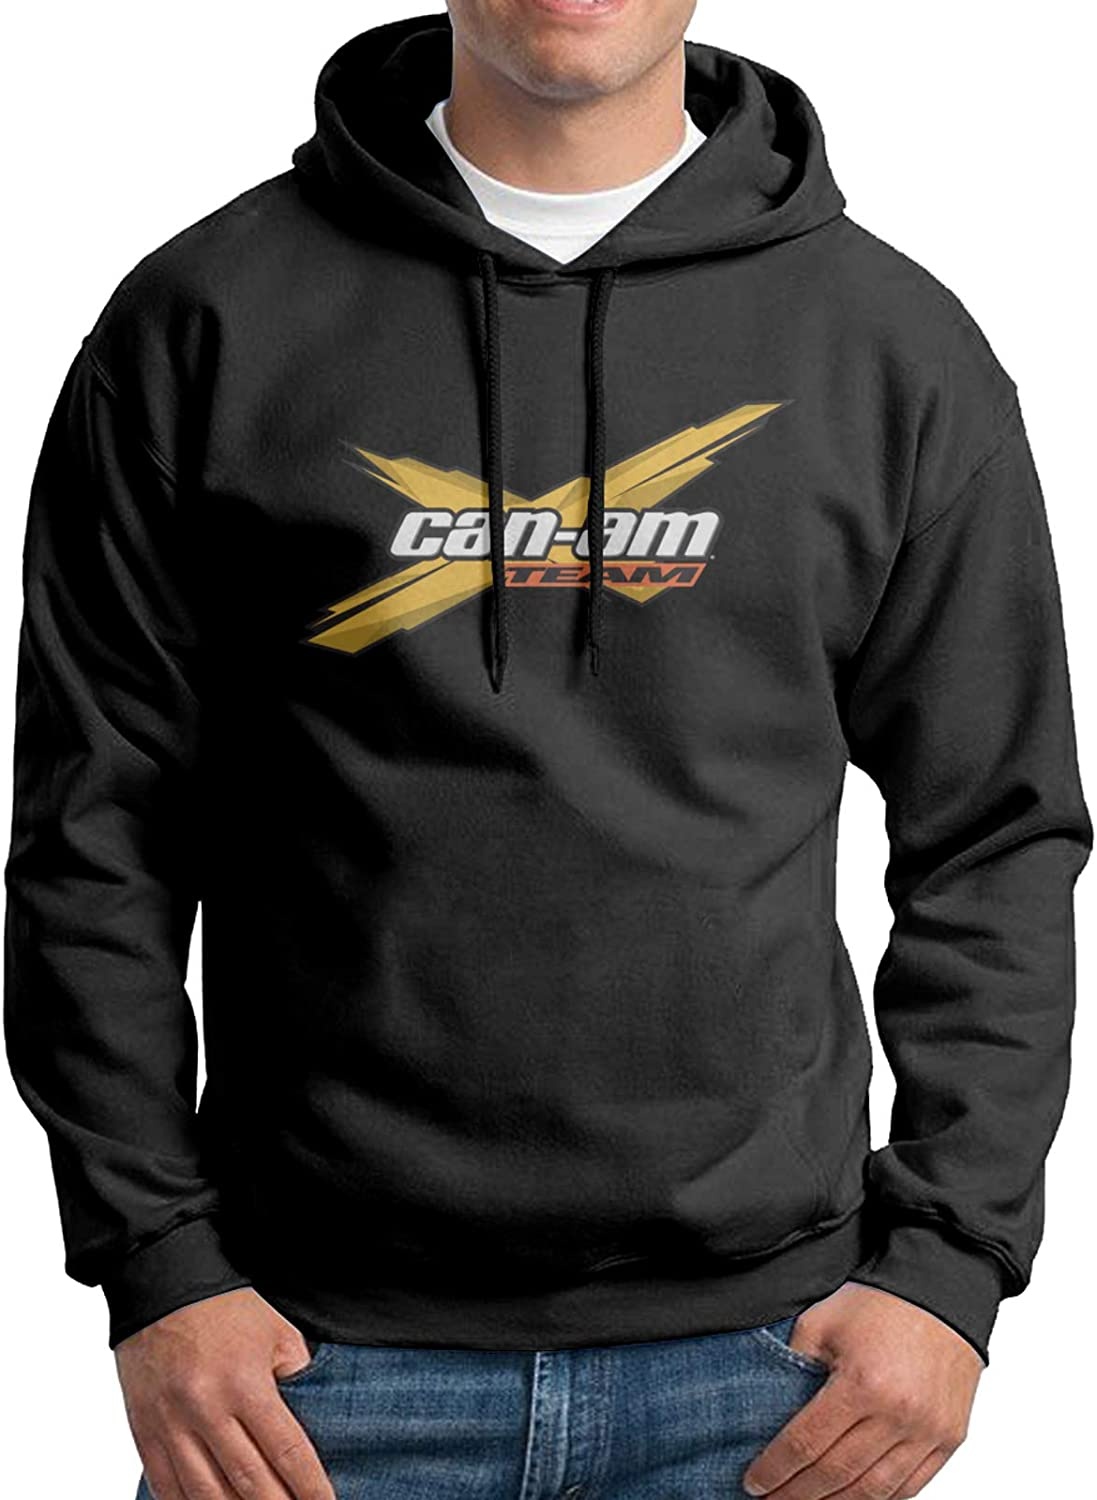 Mens Can Am Spyder Long-Sleeved Sweaters are Durable and A Fashion Killer